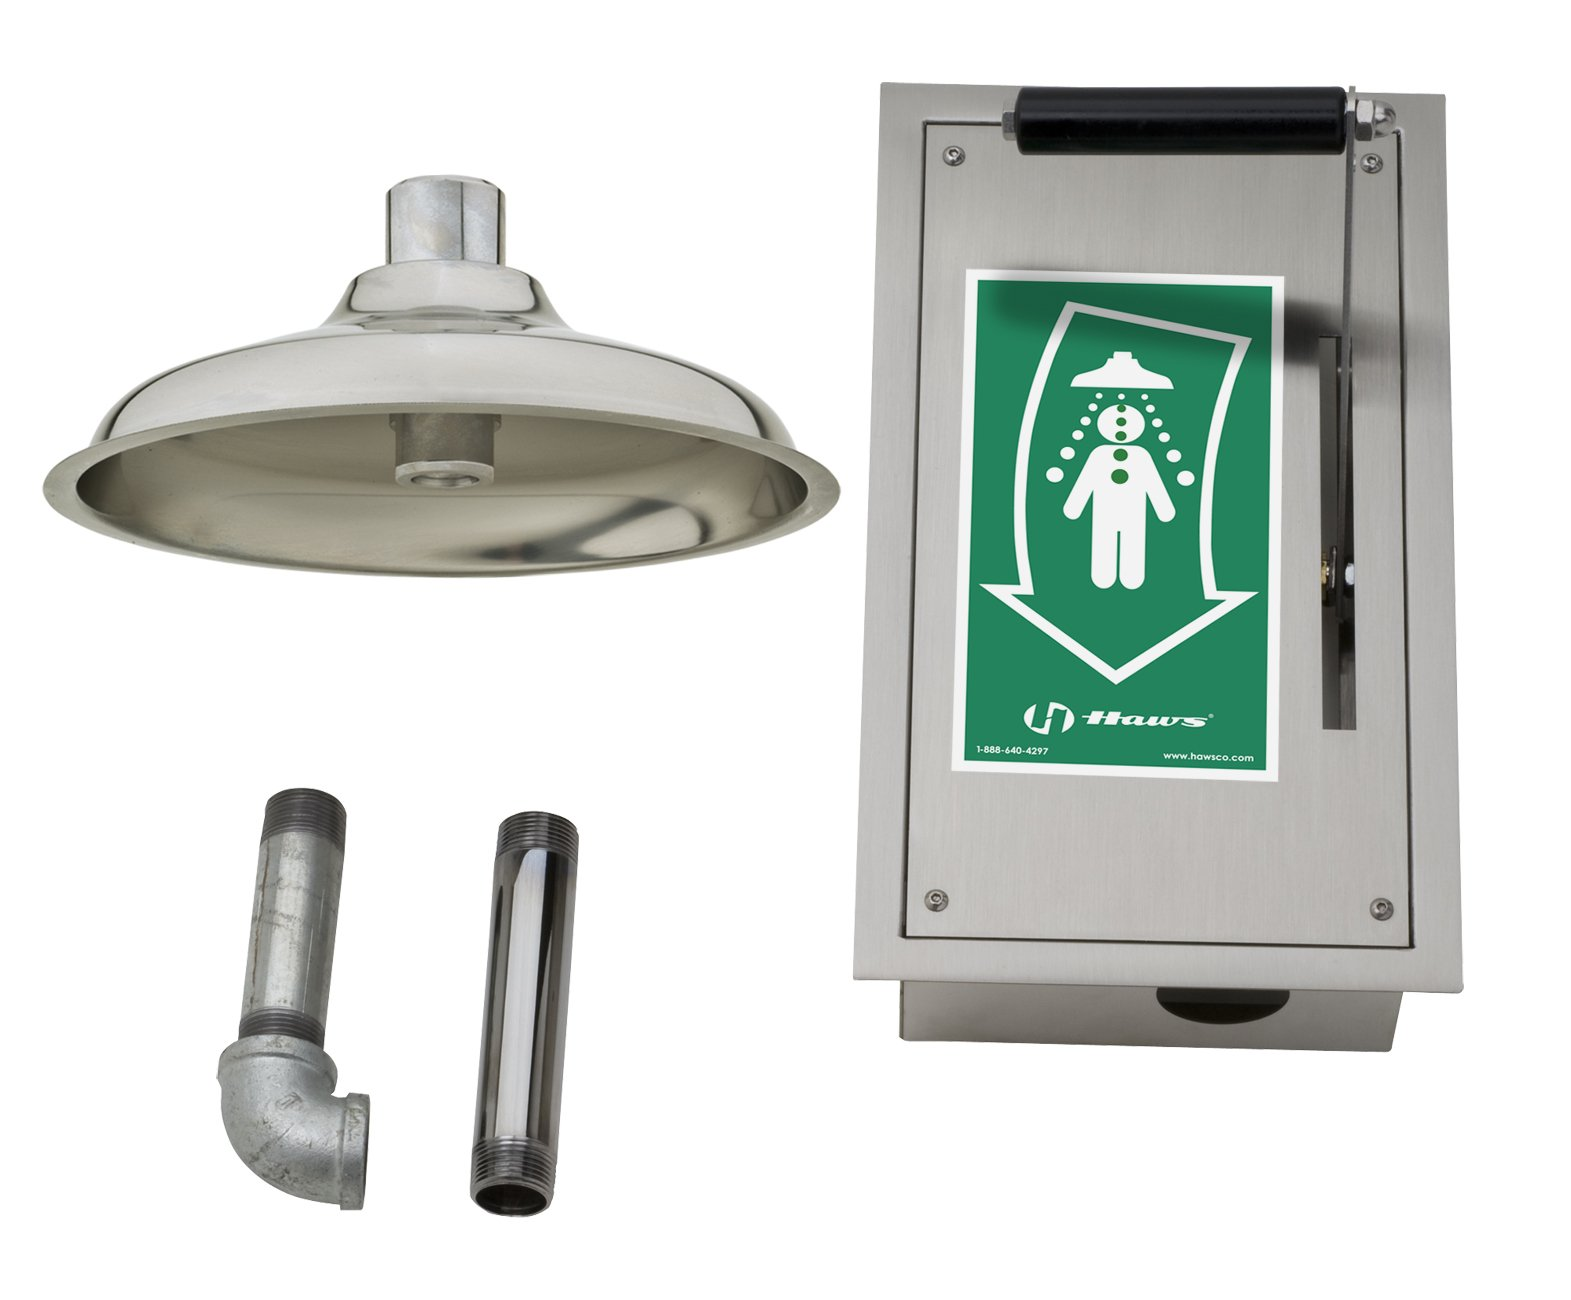 Haws 8164 Flush To Ceiling-Mounted Drench Shower with Pull-Down Lever